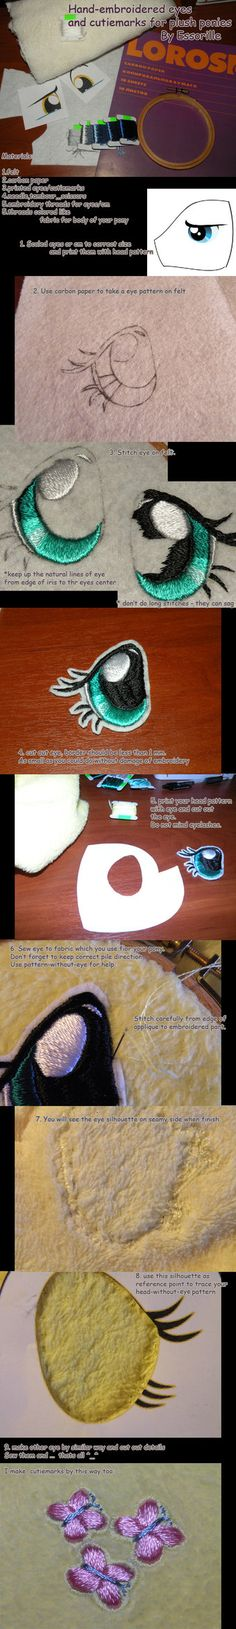 hand-embroidered plush eyes tutorial by Essorille on DeviantArt